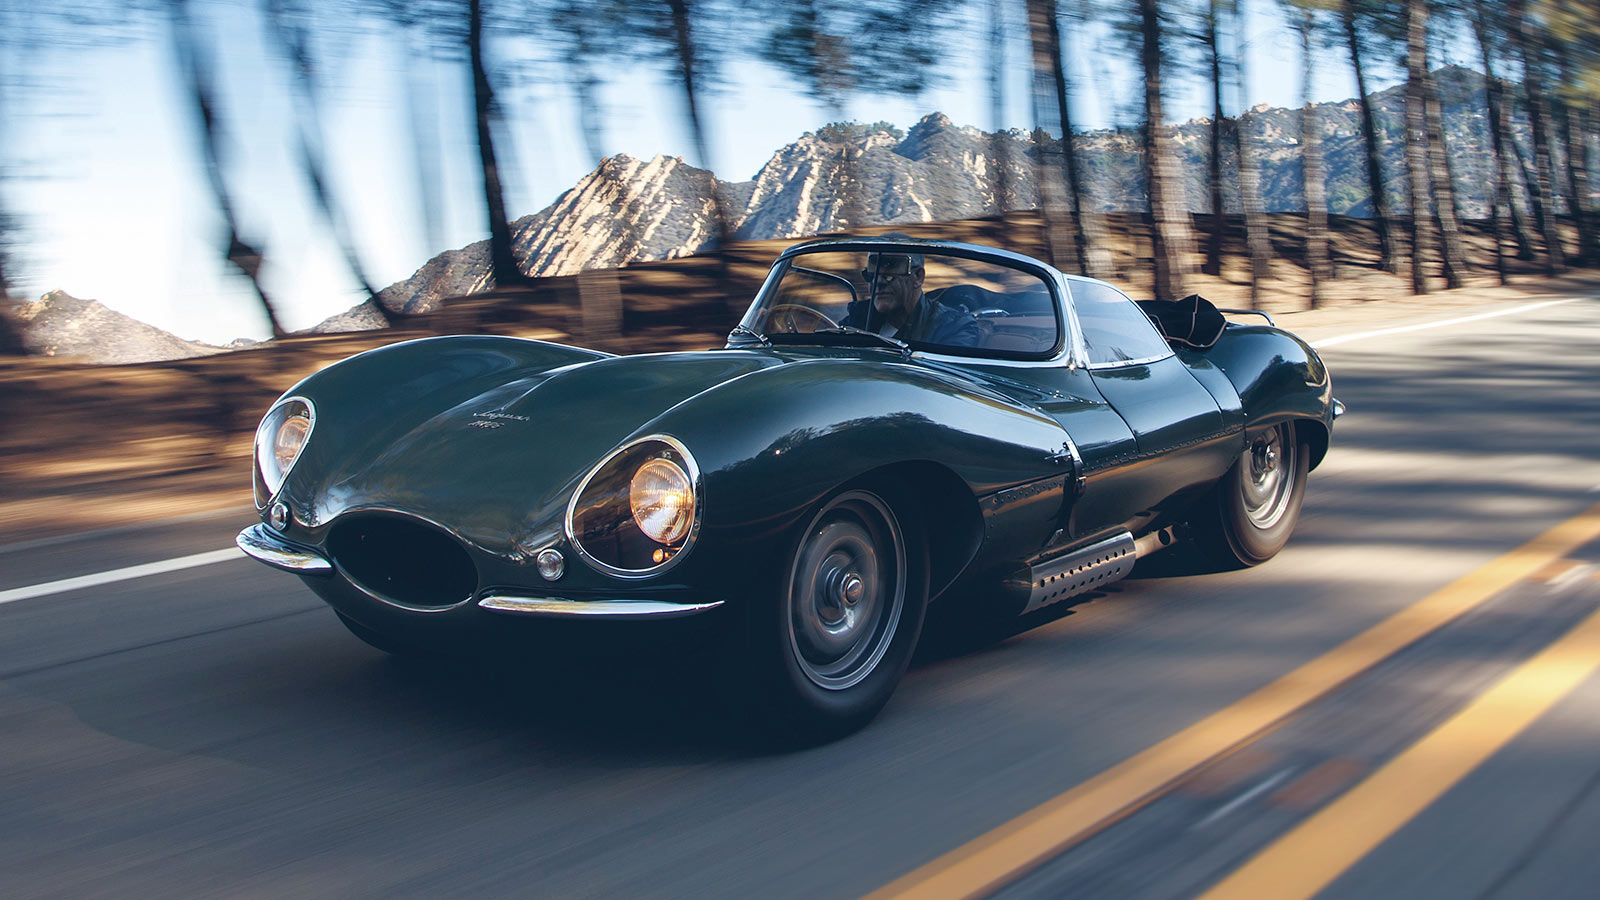 Jaguar XKSS in green driving down a road.